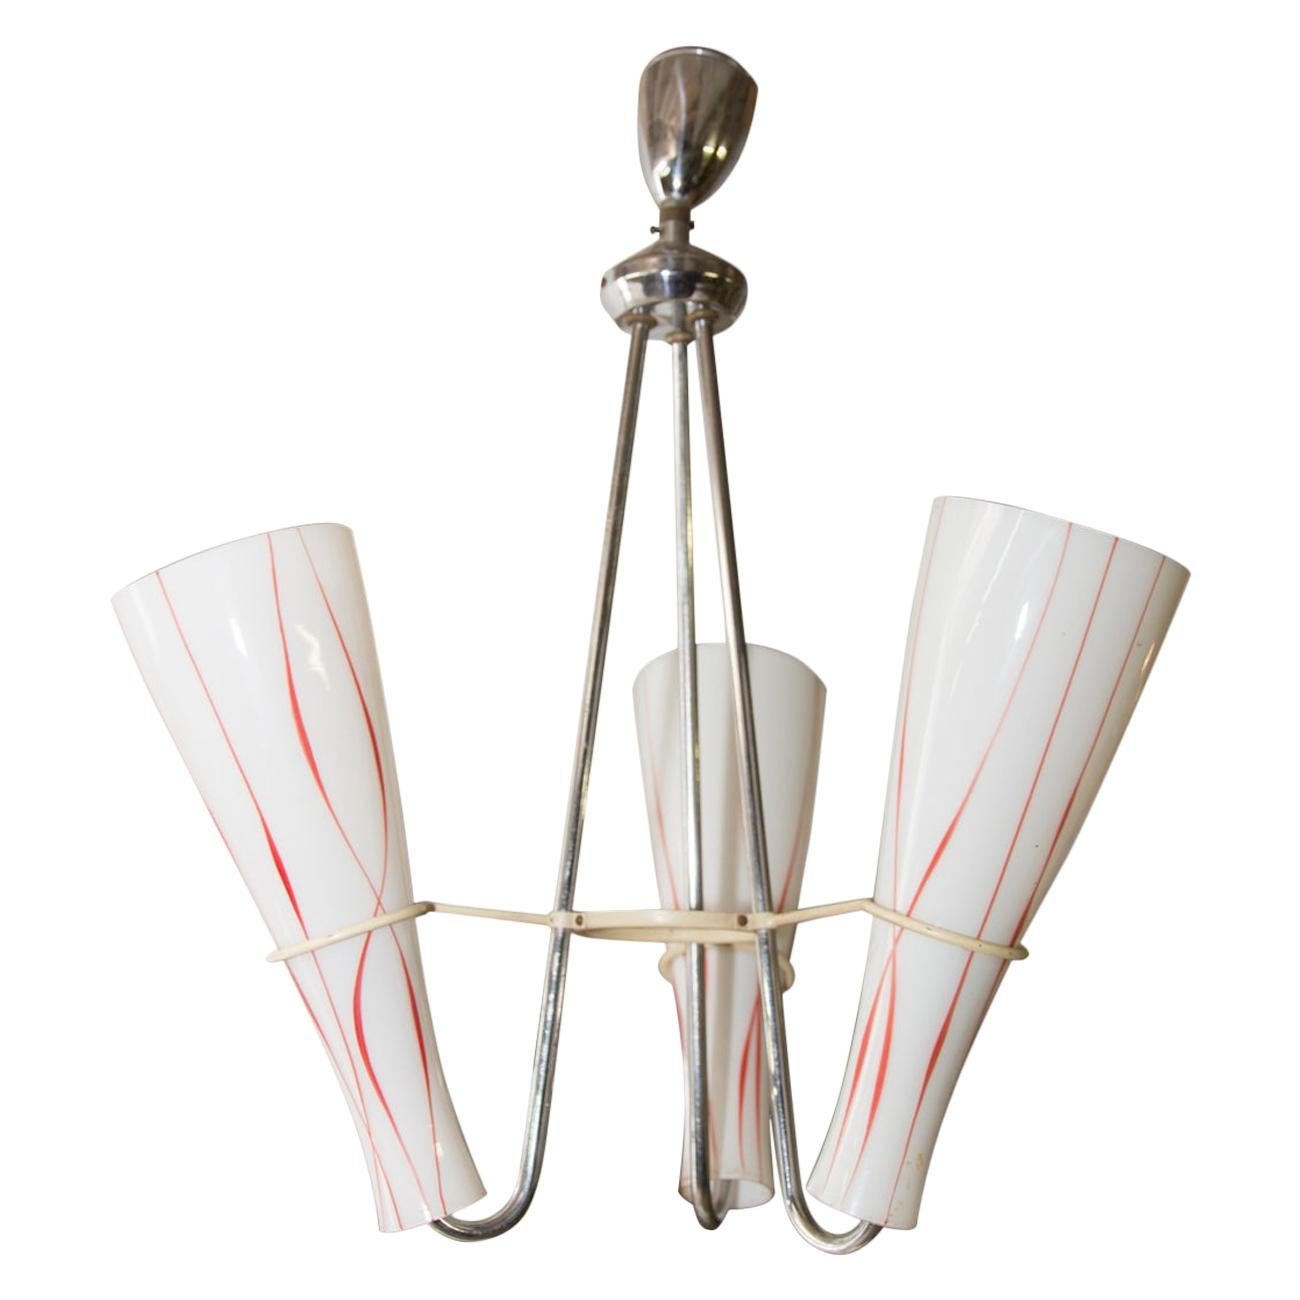 Midcentury Chandelier with Three Opaline Glass Lampshades, 1960s